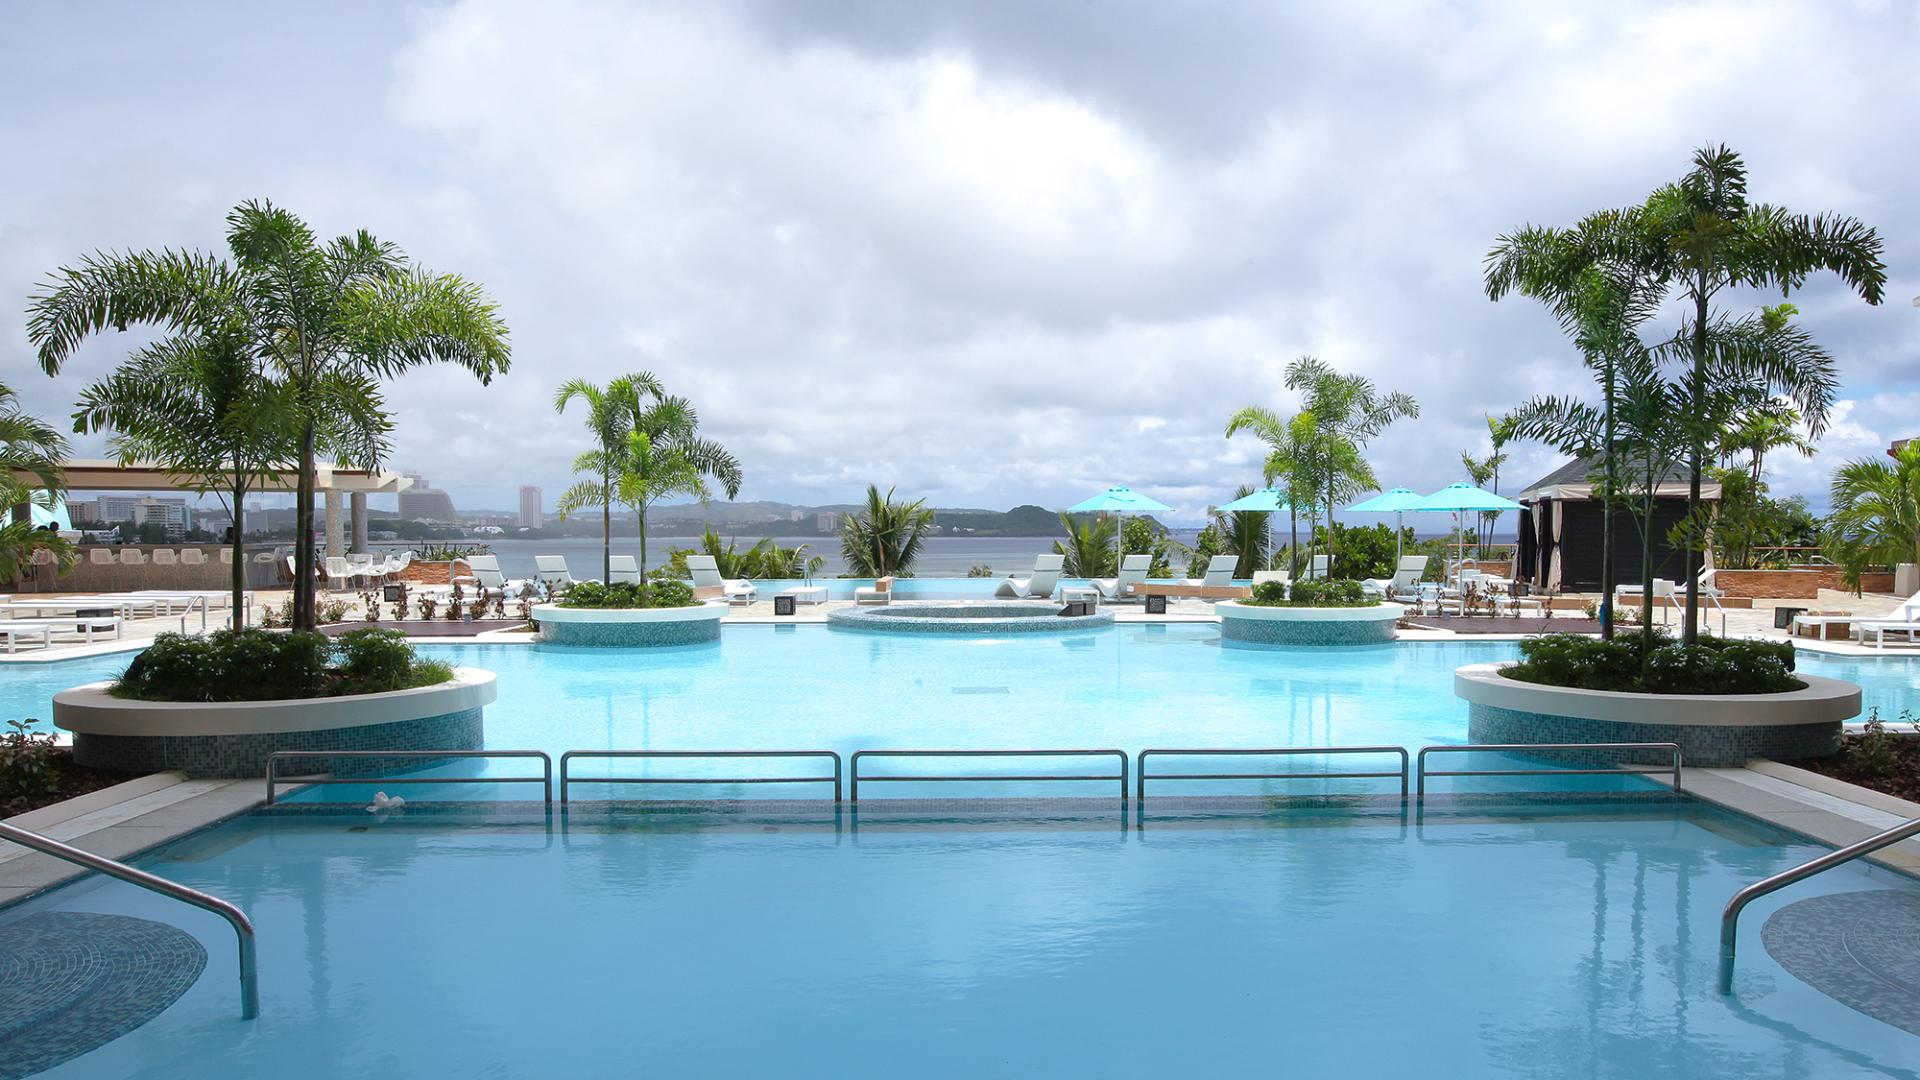 Lotte Hotel Guam Outdoor Swimming Pool